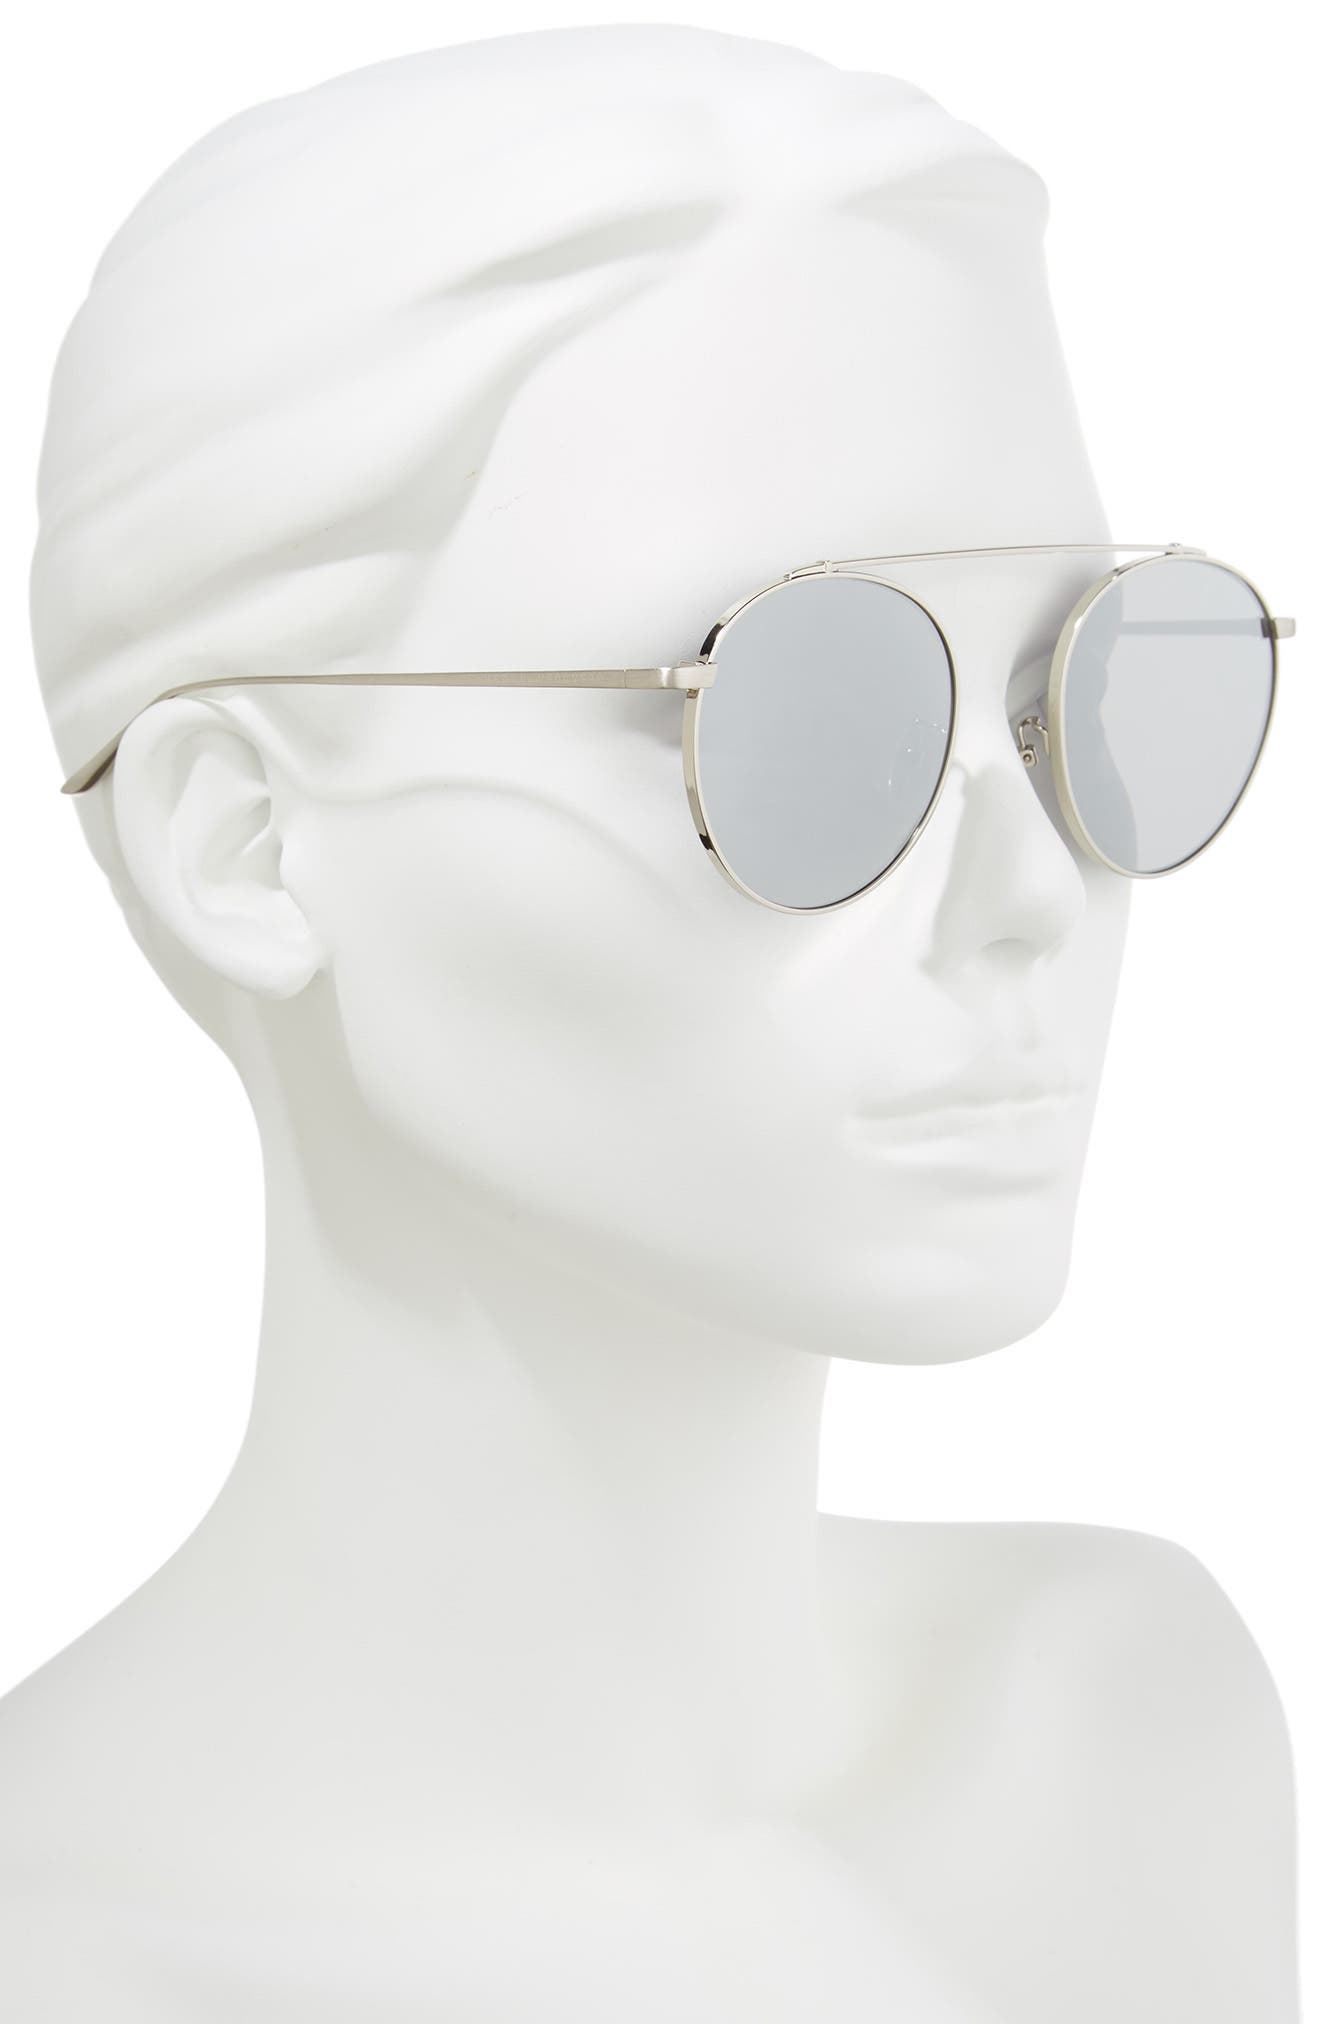 53mm Round Sunglasses,                             Alternate thumbnail 2, color,                             ROSE GOLD/PINK MIRROR